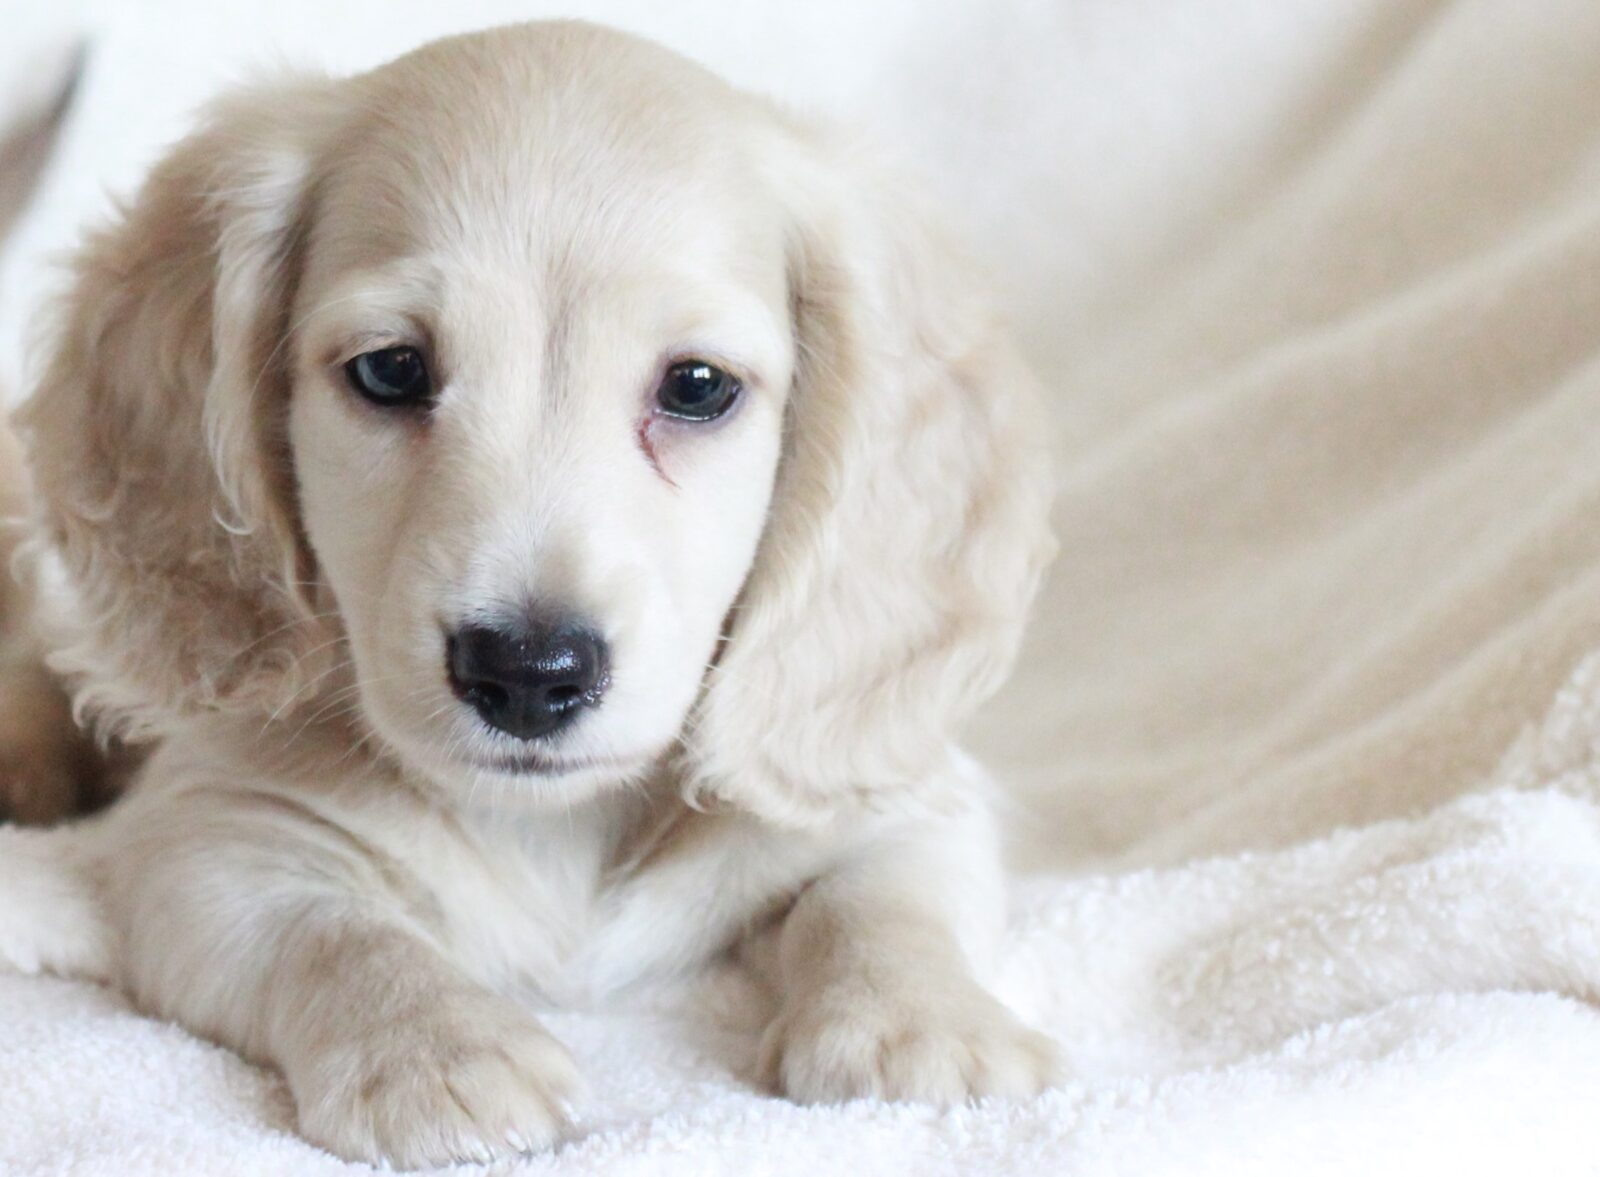 About English Cream Dachshunds Crown Dachshunds